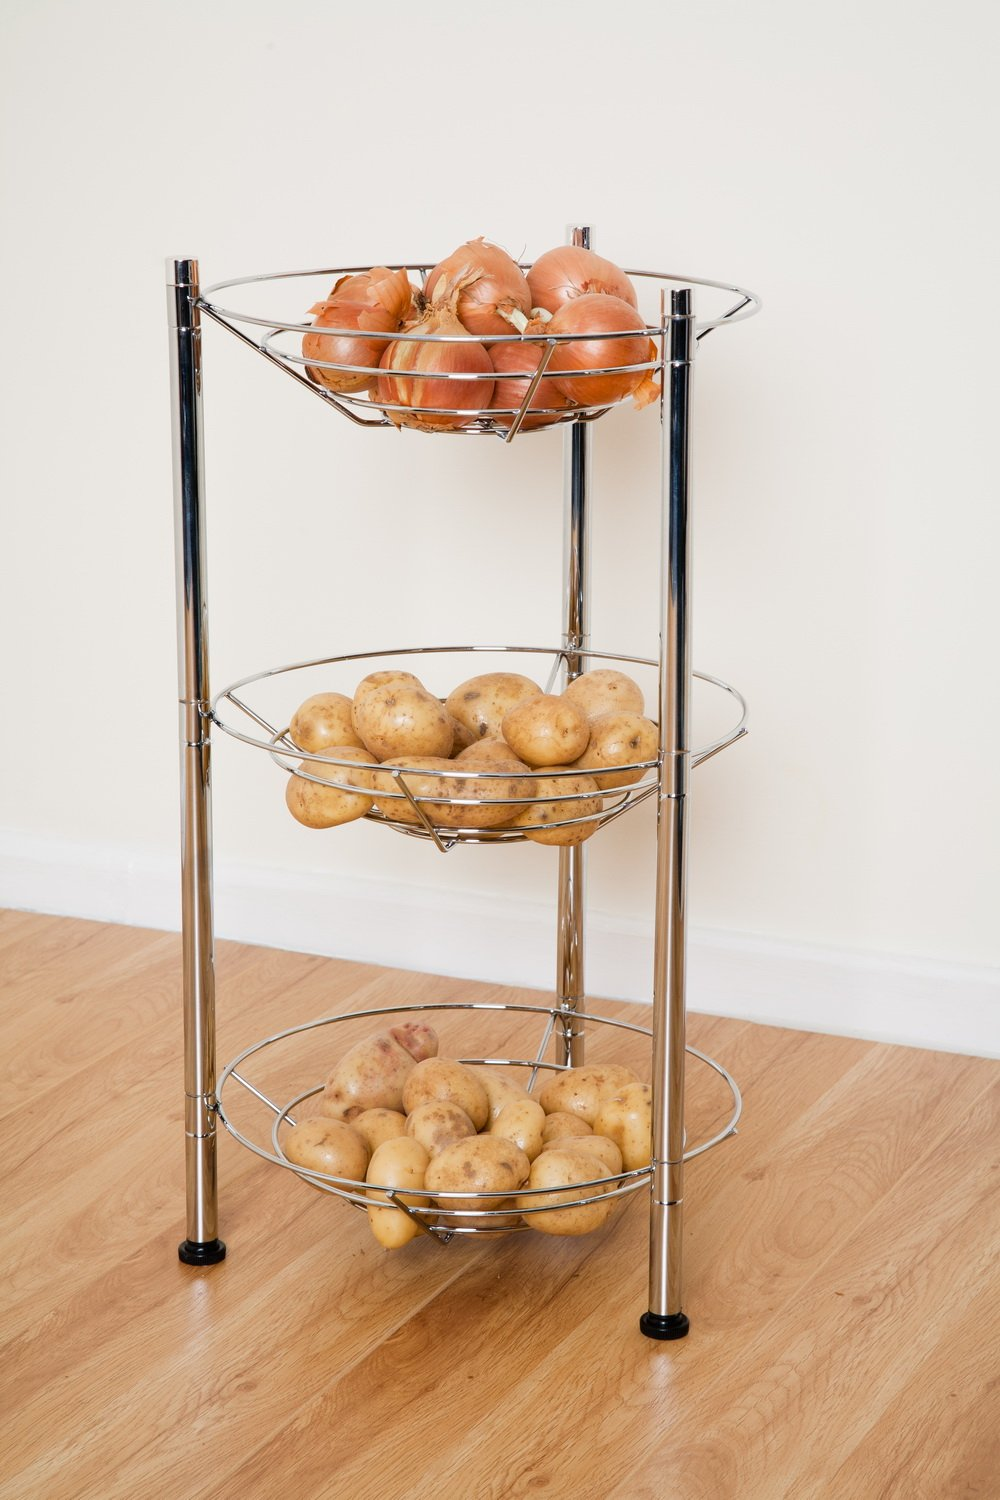 ASPECT Kitchen Storage 3 Tier Round Vegetable/Fruit Rack, Steel, Chrome, 34  X 34 X 61 Cm: Amazon.co.uk: Kitchen U0026 Home